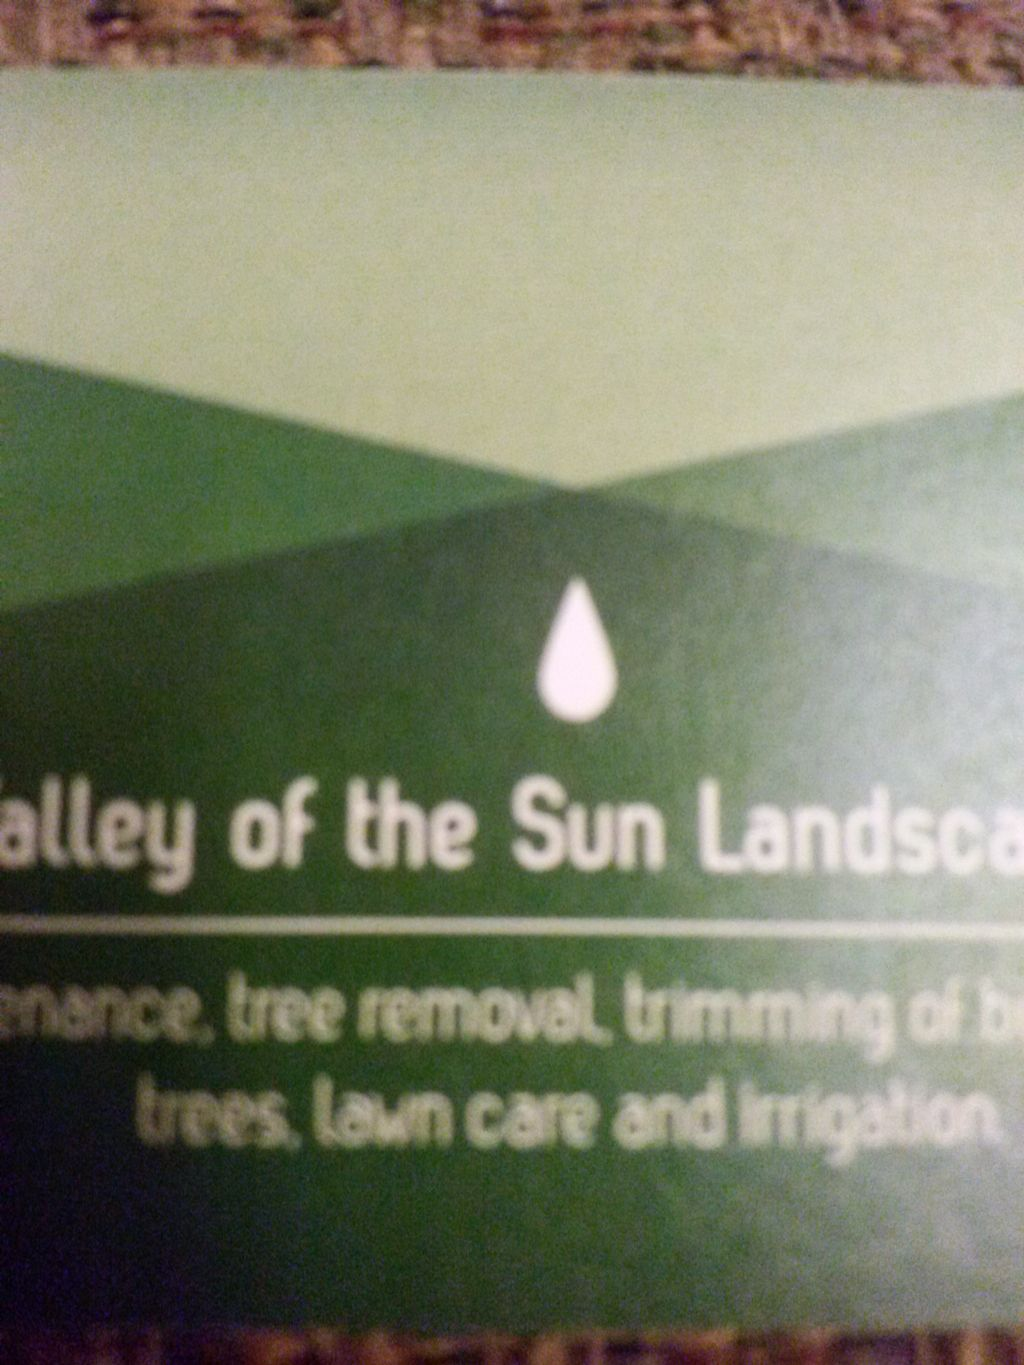 Valley of the Sun Landscaping